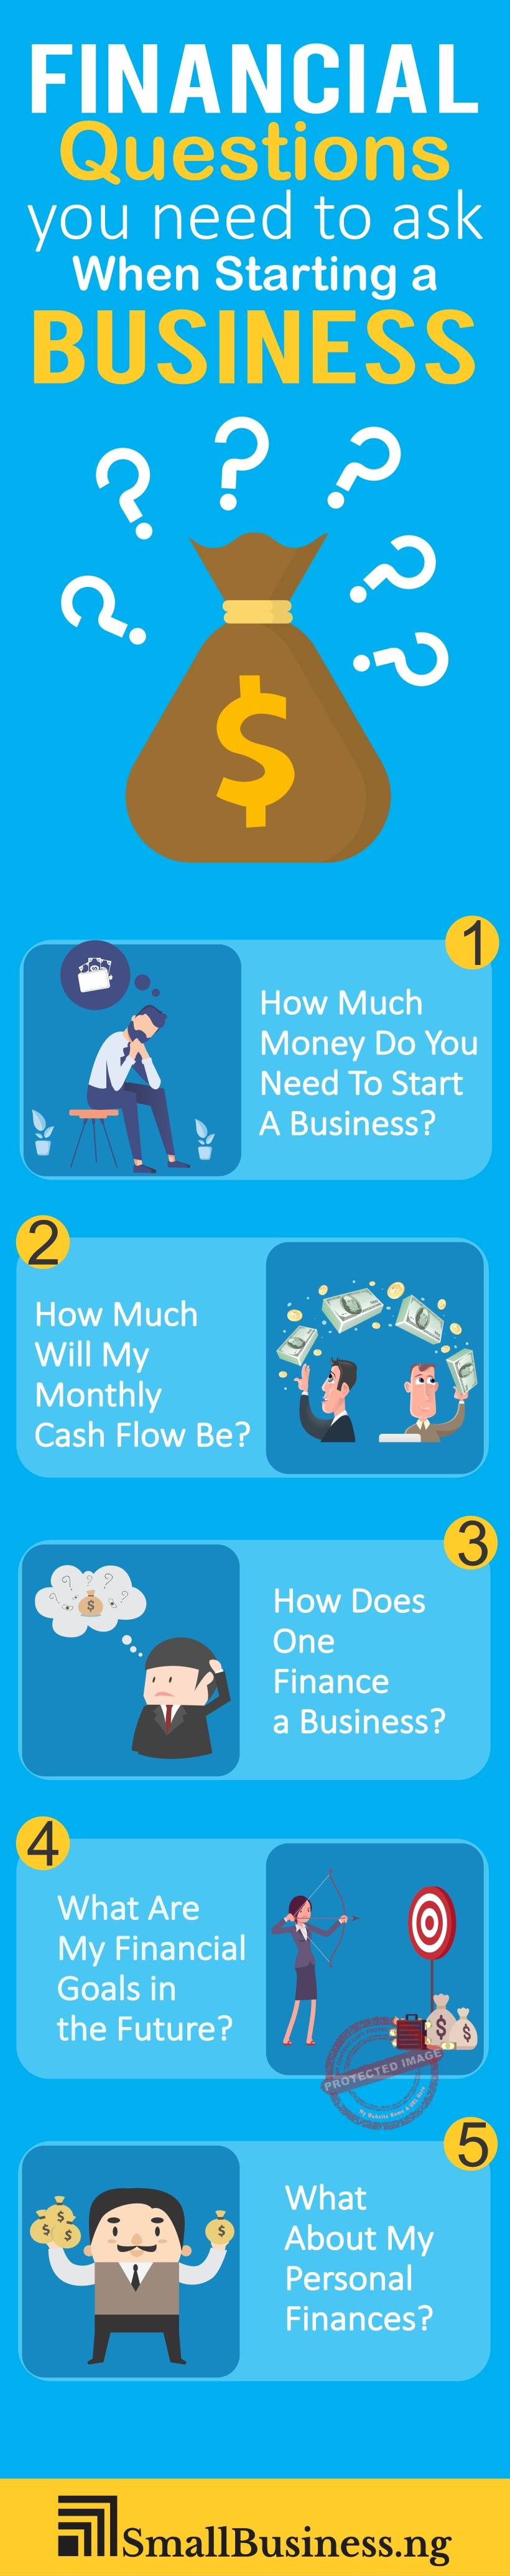 Financial Questions You Need to ask When Starting a Business infographic